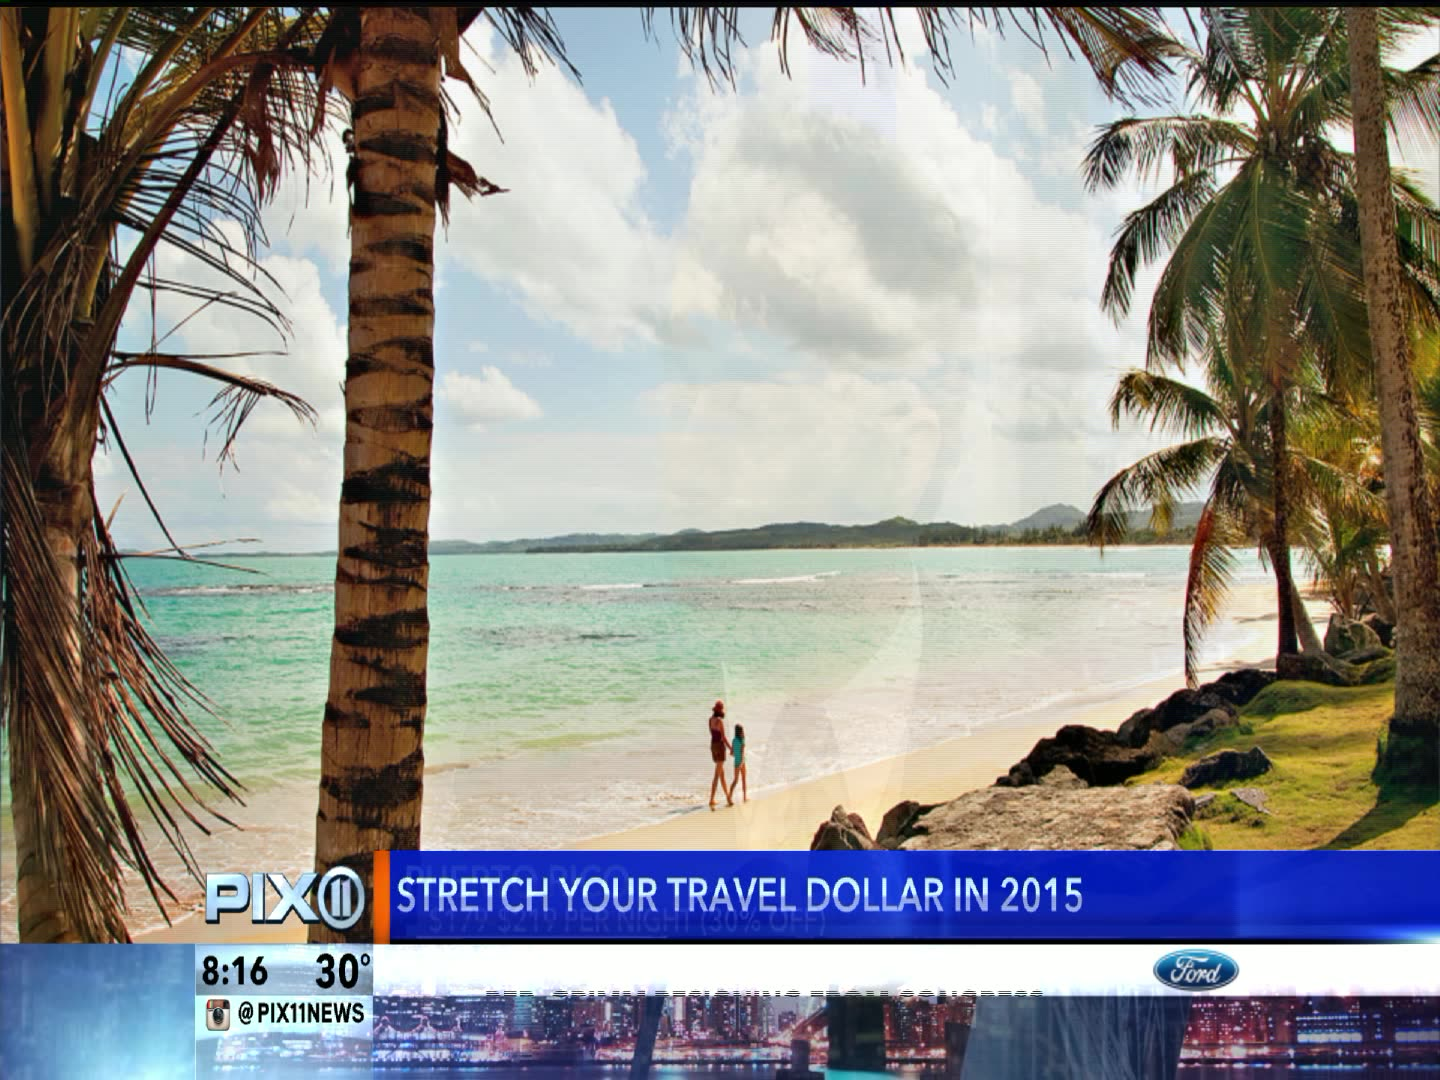 Tips For Stretching Your Travel Dollars In 2015